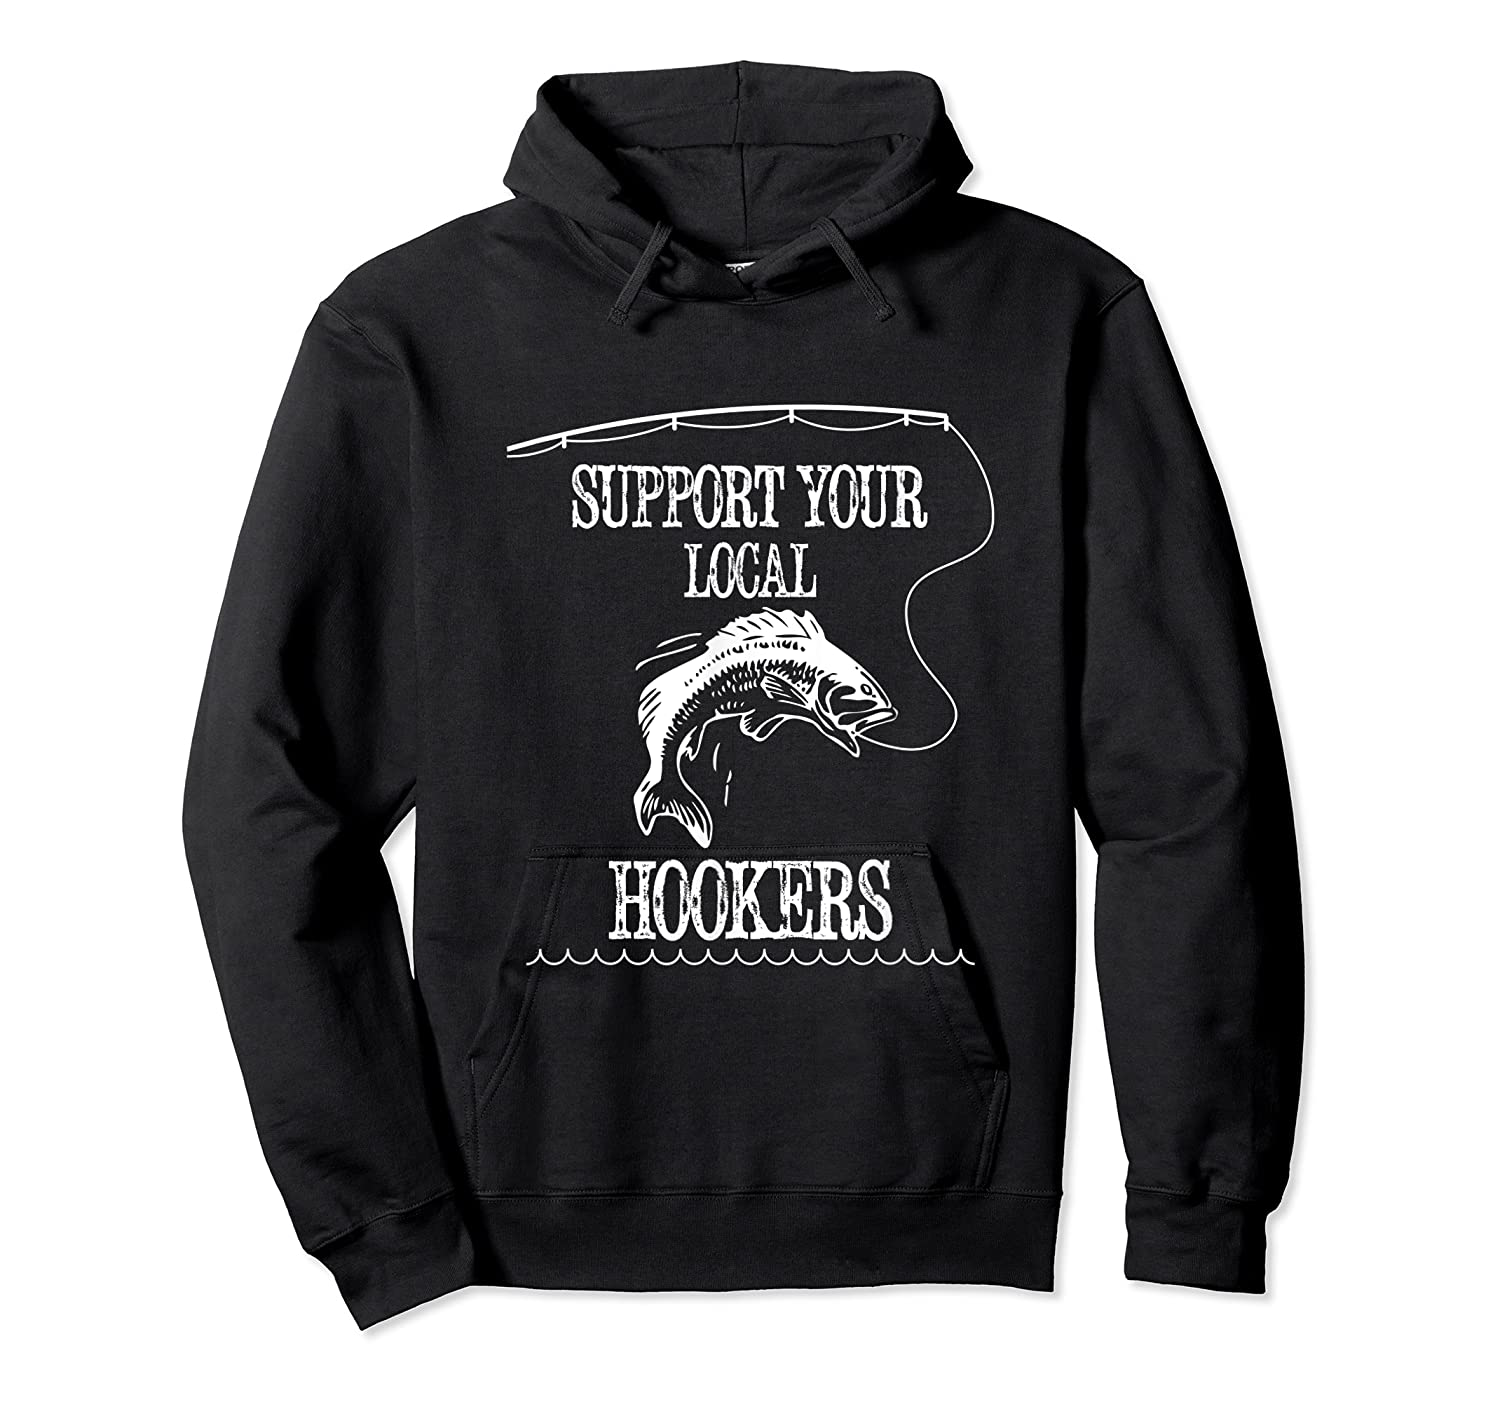 Support Your Local Hookers Funny Fishing Shirts Unisex Pullover Hoodie